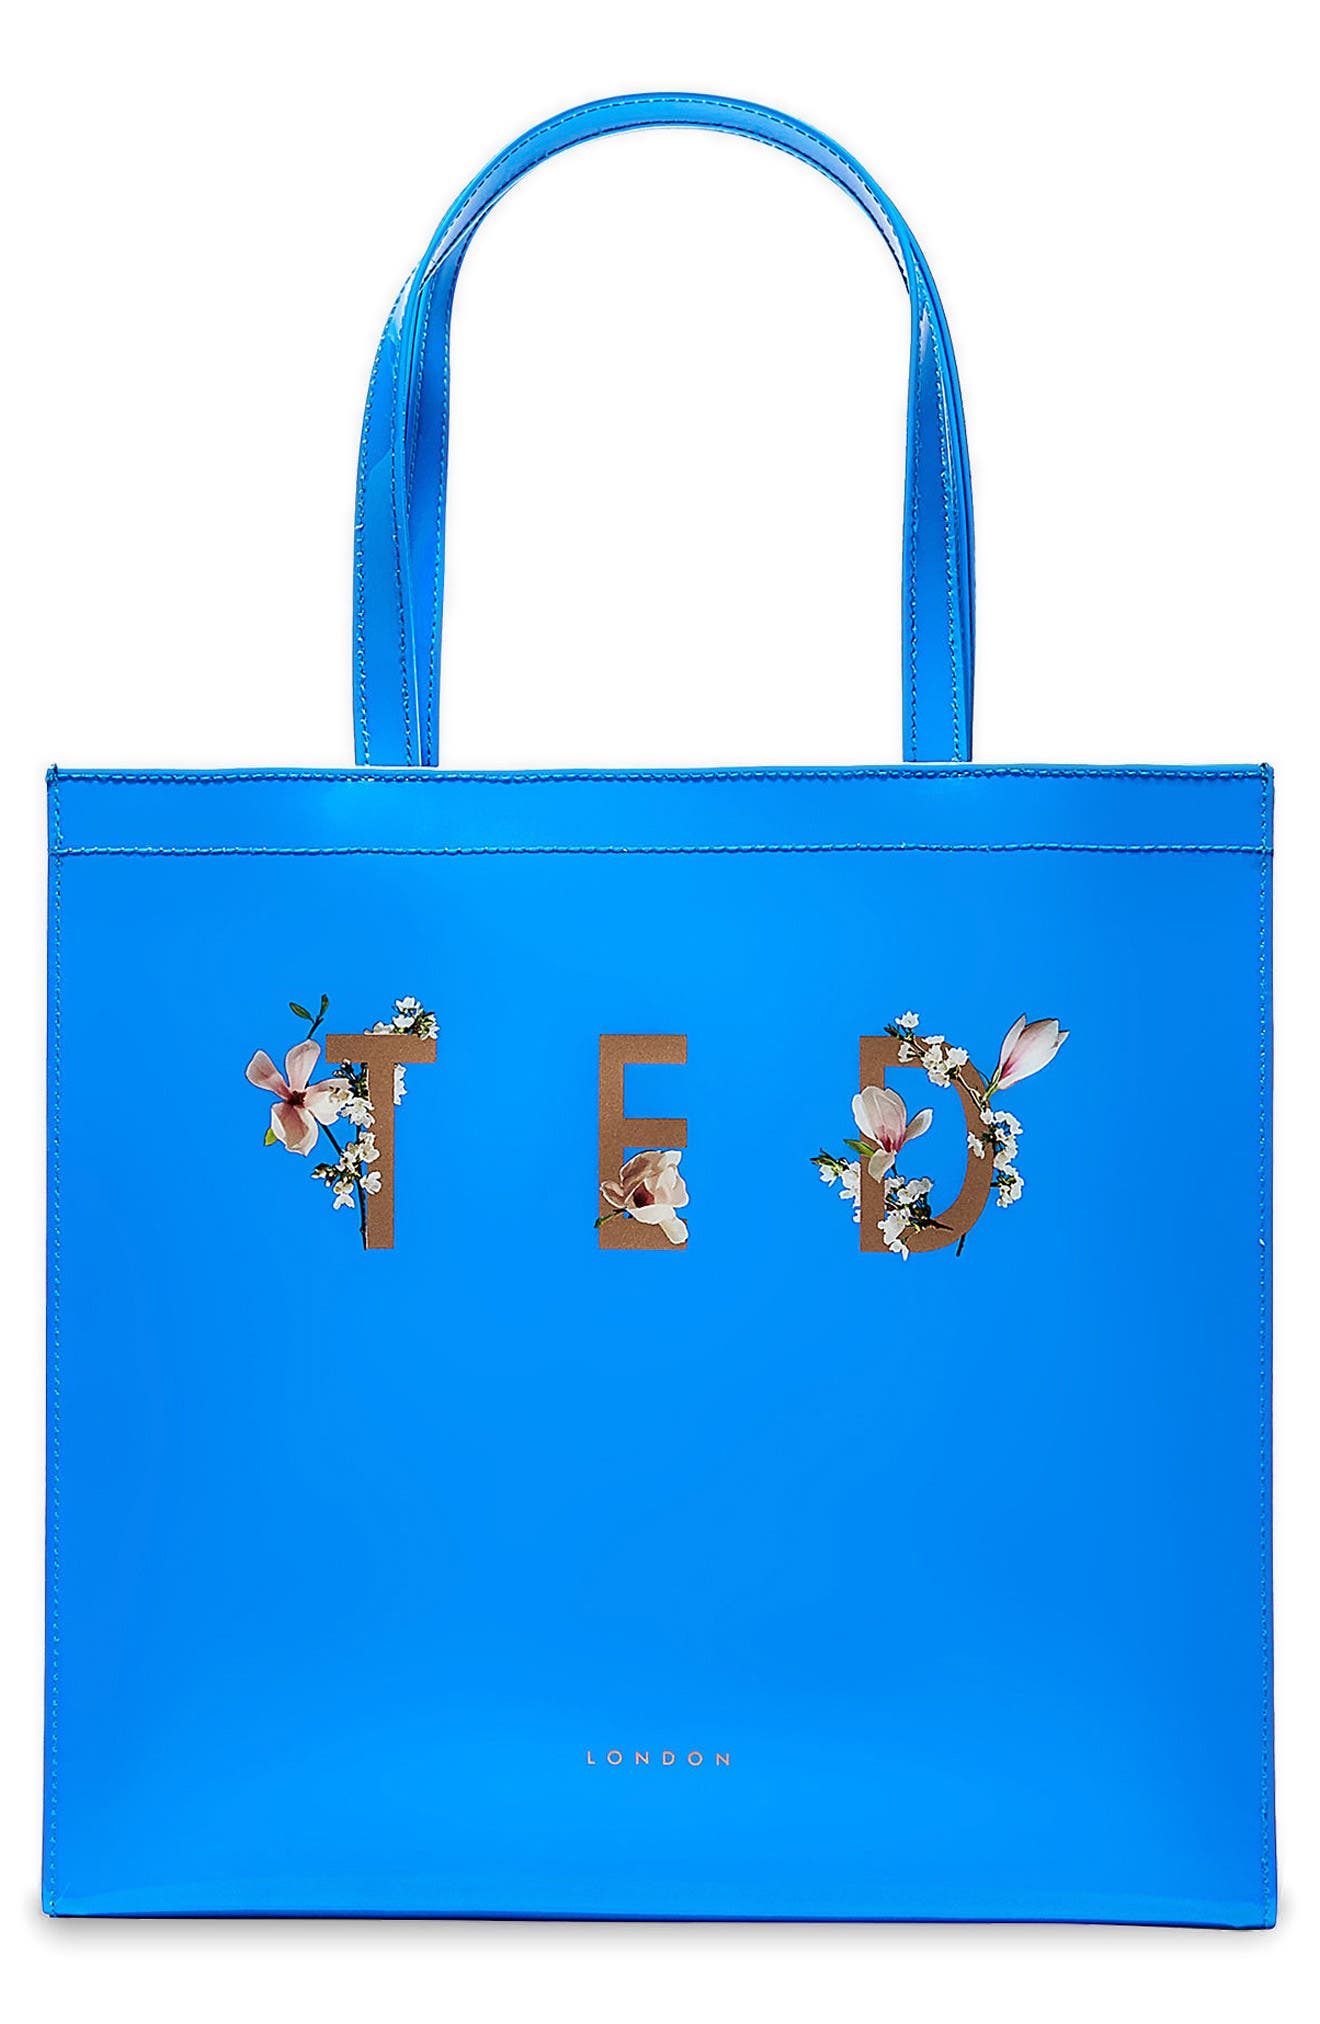 Theacon Large Icon Tote,                             Main thumbnail 1, color,                             Bright Blue